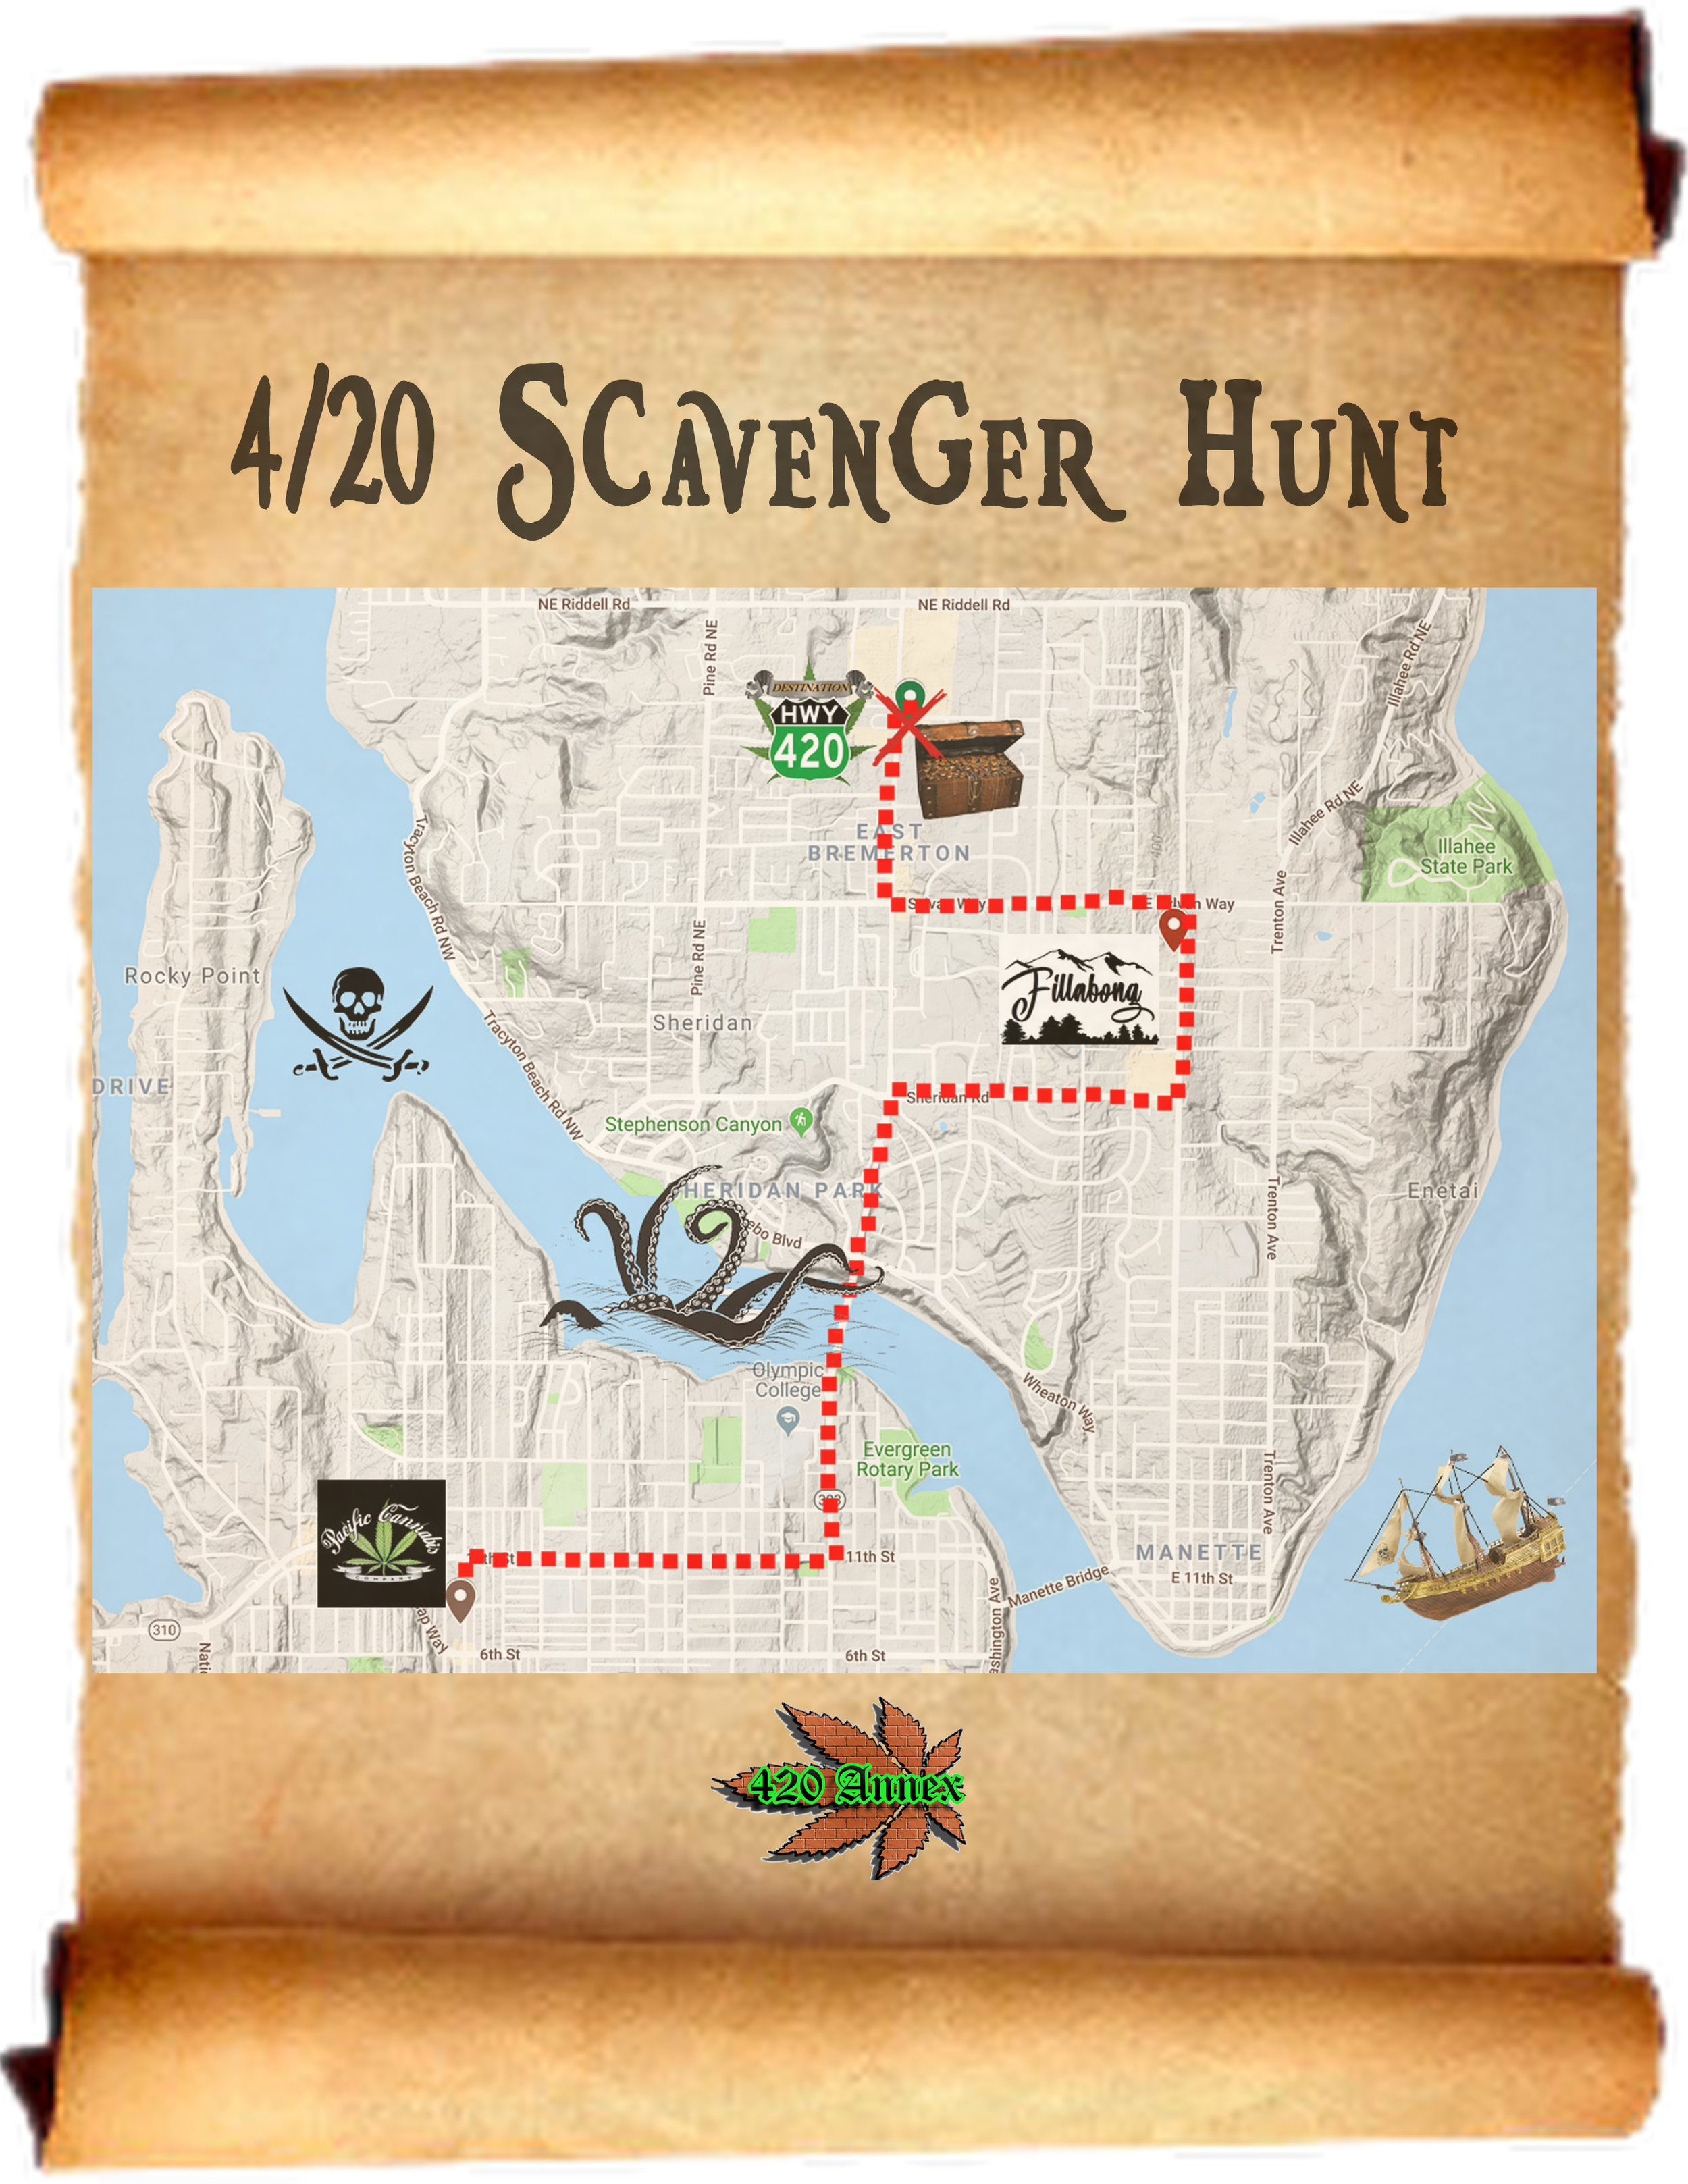 To participate in the Kitsap County 4/20 Scavenger Hunt, visit Filabong Bremerton, Pacific Cannabis Company, and Destination HWY 420, solve each stores' riddle, and find their mystery items, to be eligible to win some badass 420 Annex gift baskets!